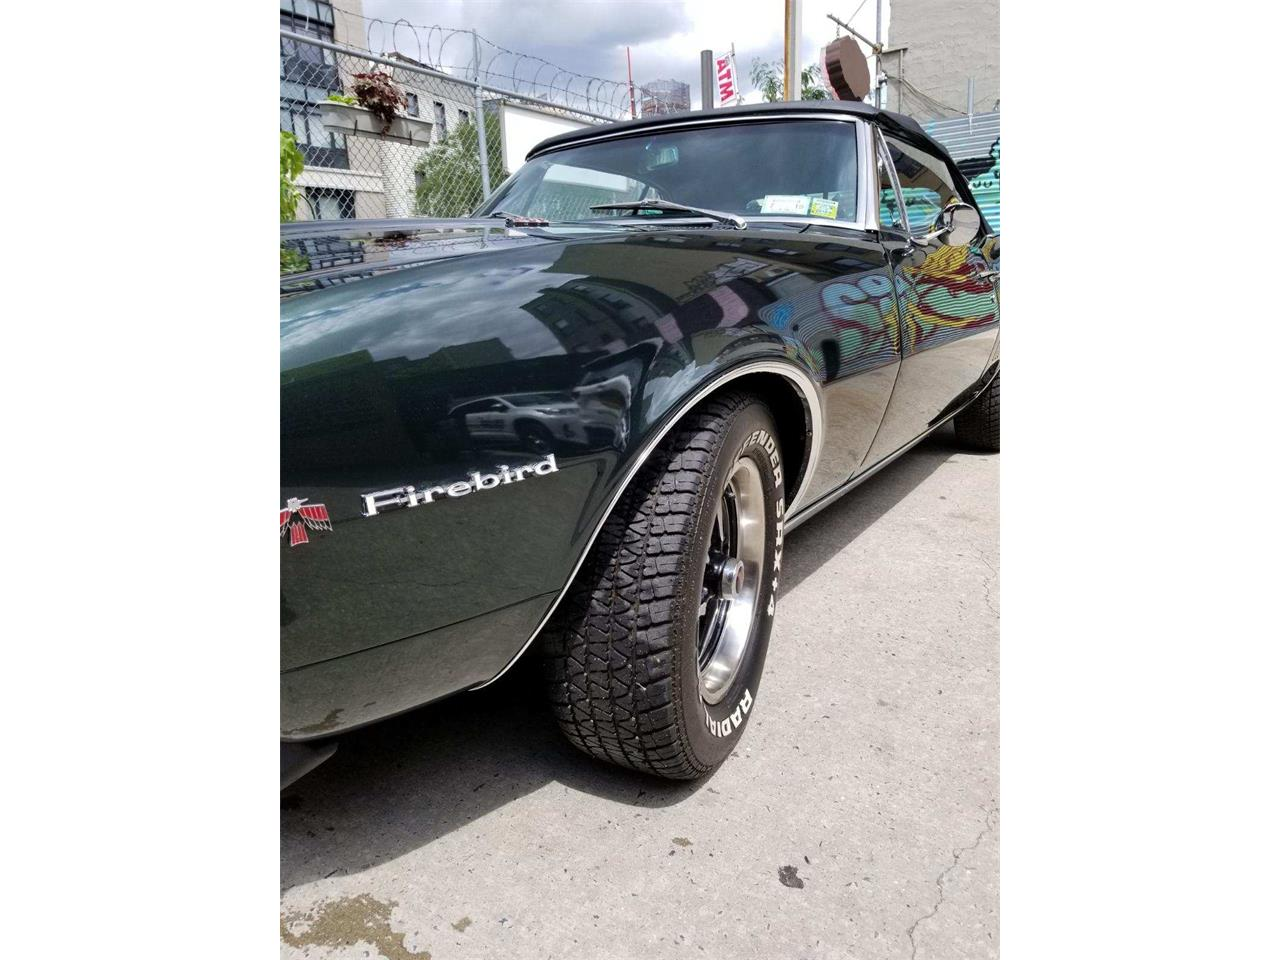 Large Picture of 1967 Pontiac Firebird located in New York - $20,000.00 - OESA